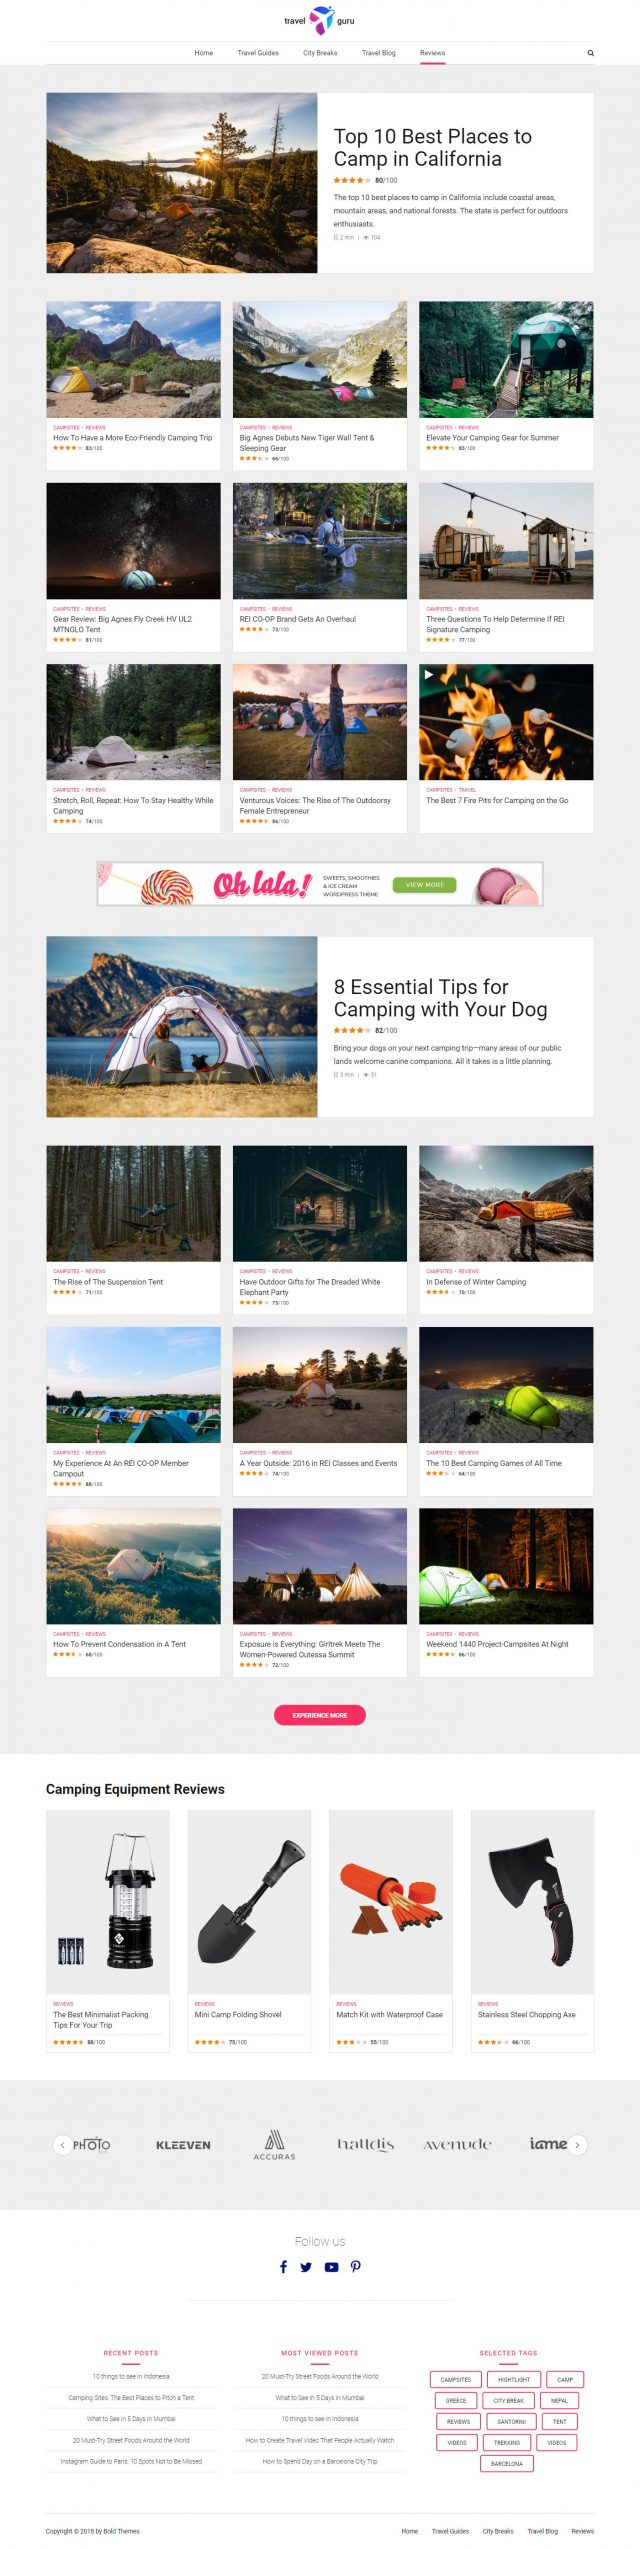 newstar wordpress theme travel reviews page 2